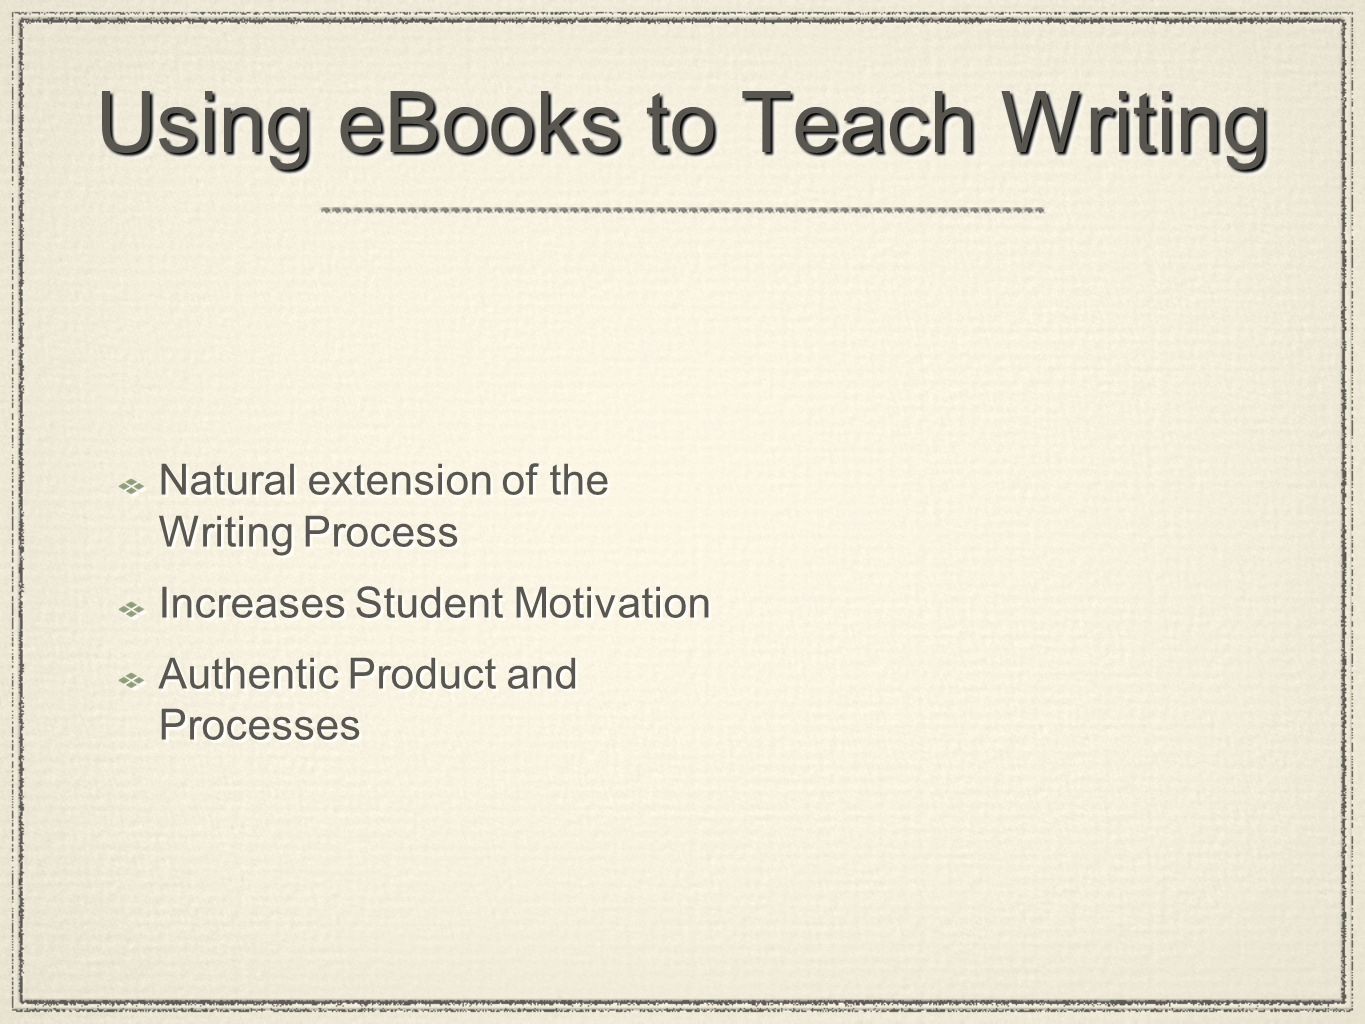 Using eBooks to Teach Writing Natural extension of the Writing Process Increases Student Motivation Authentic Product and Processes Natural extension of the Writing Process Increases Student Motivation Authentic Product and Processes